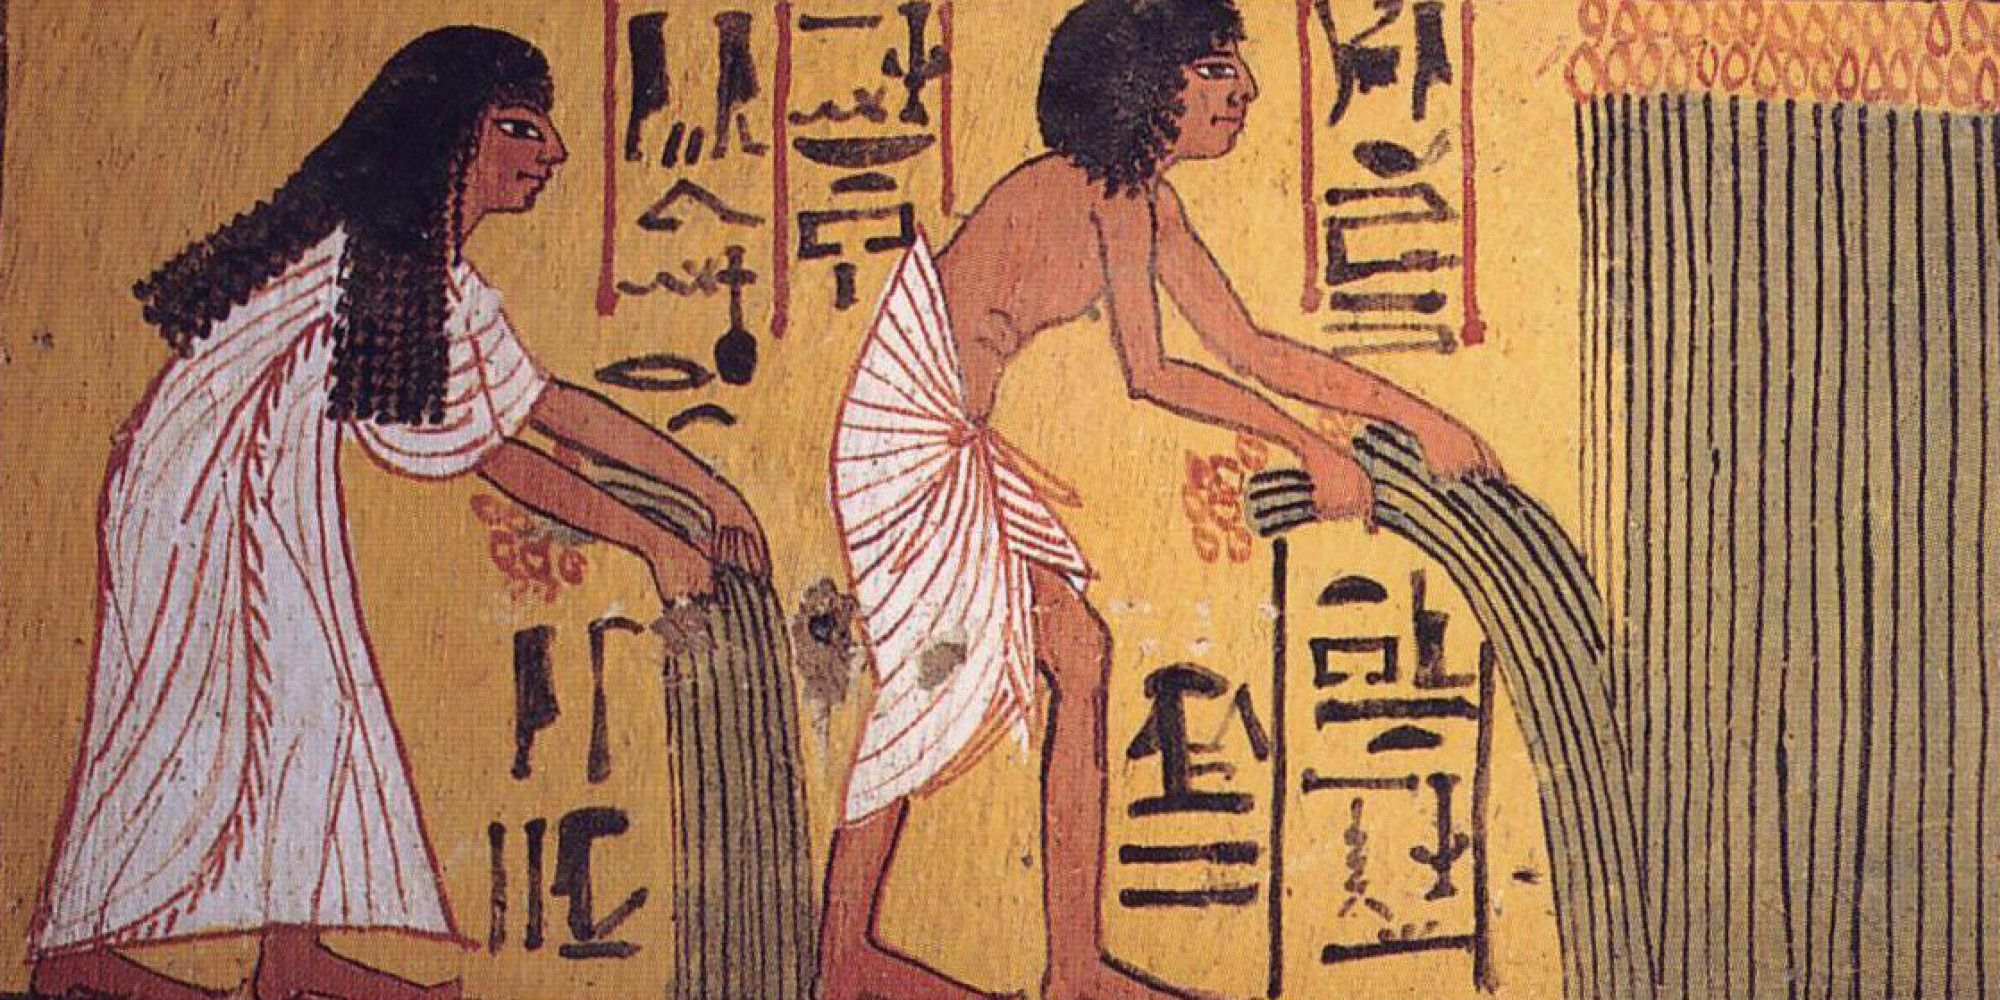 Ancient Egyptians Had Vegetarian Diet, Mummy Study Shows